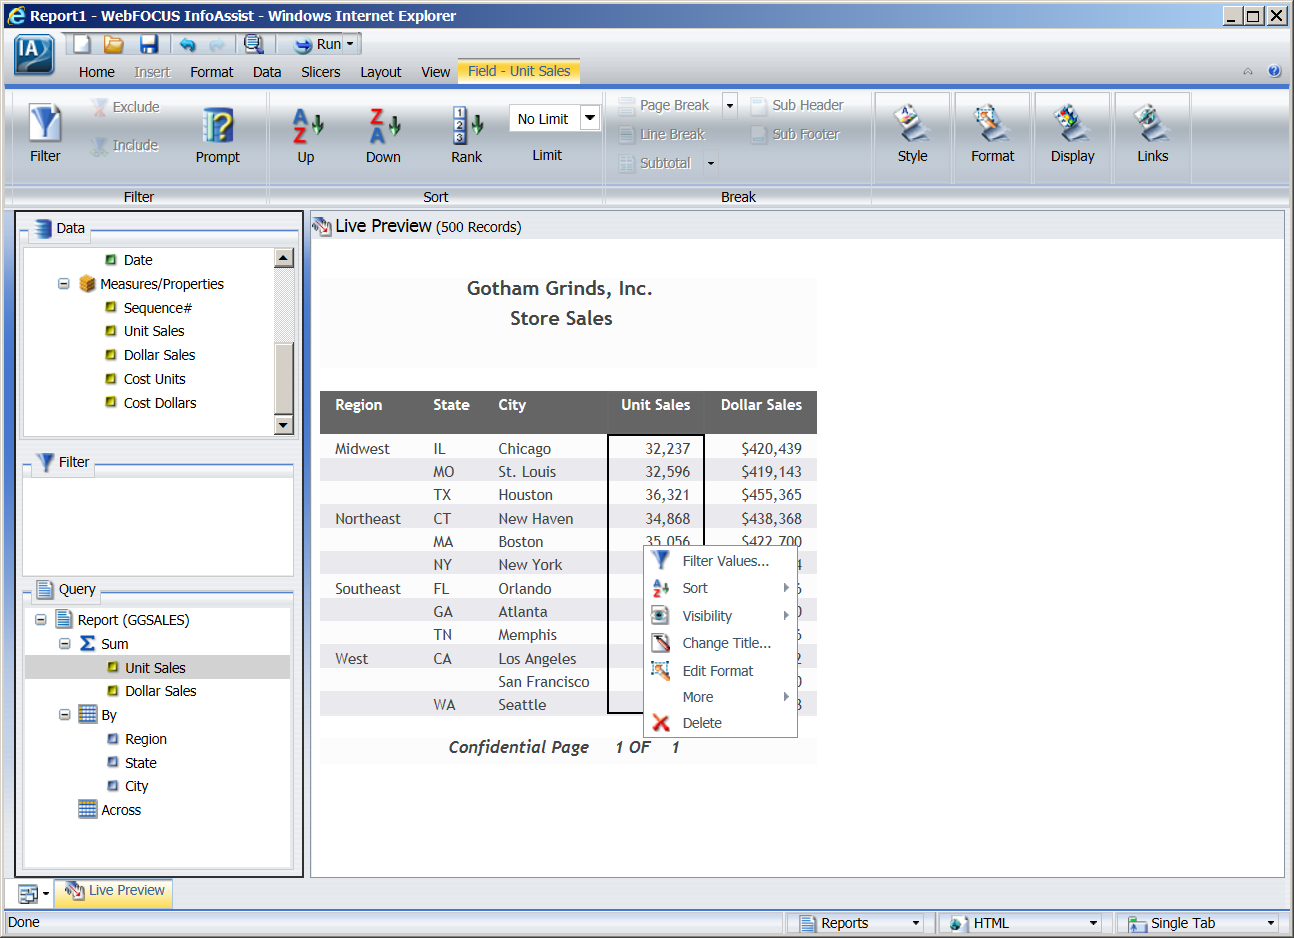 BI+Portal+with+InfoAssist Developing BI/BA Web and Mobile Applications with WebFOCUS